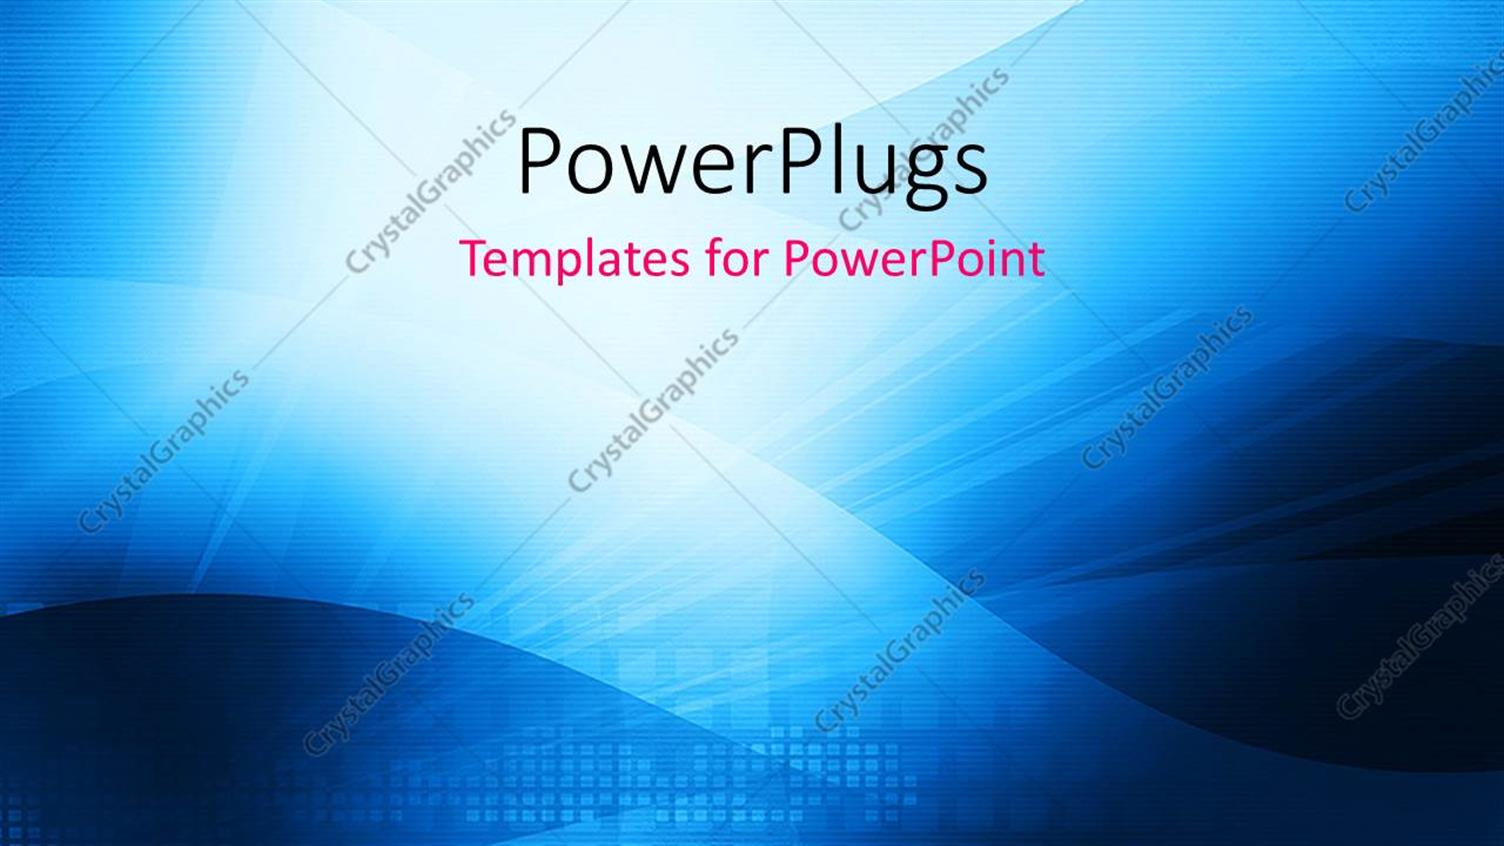 PowerPoint Template Displaying Abstract Blue Colored Technology Theme with Rays and Waves